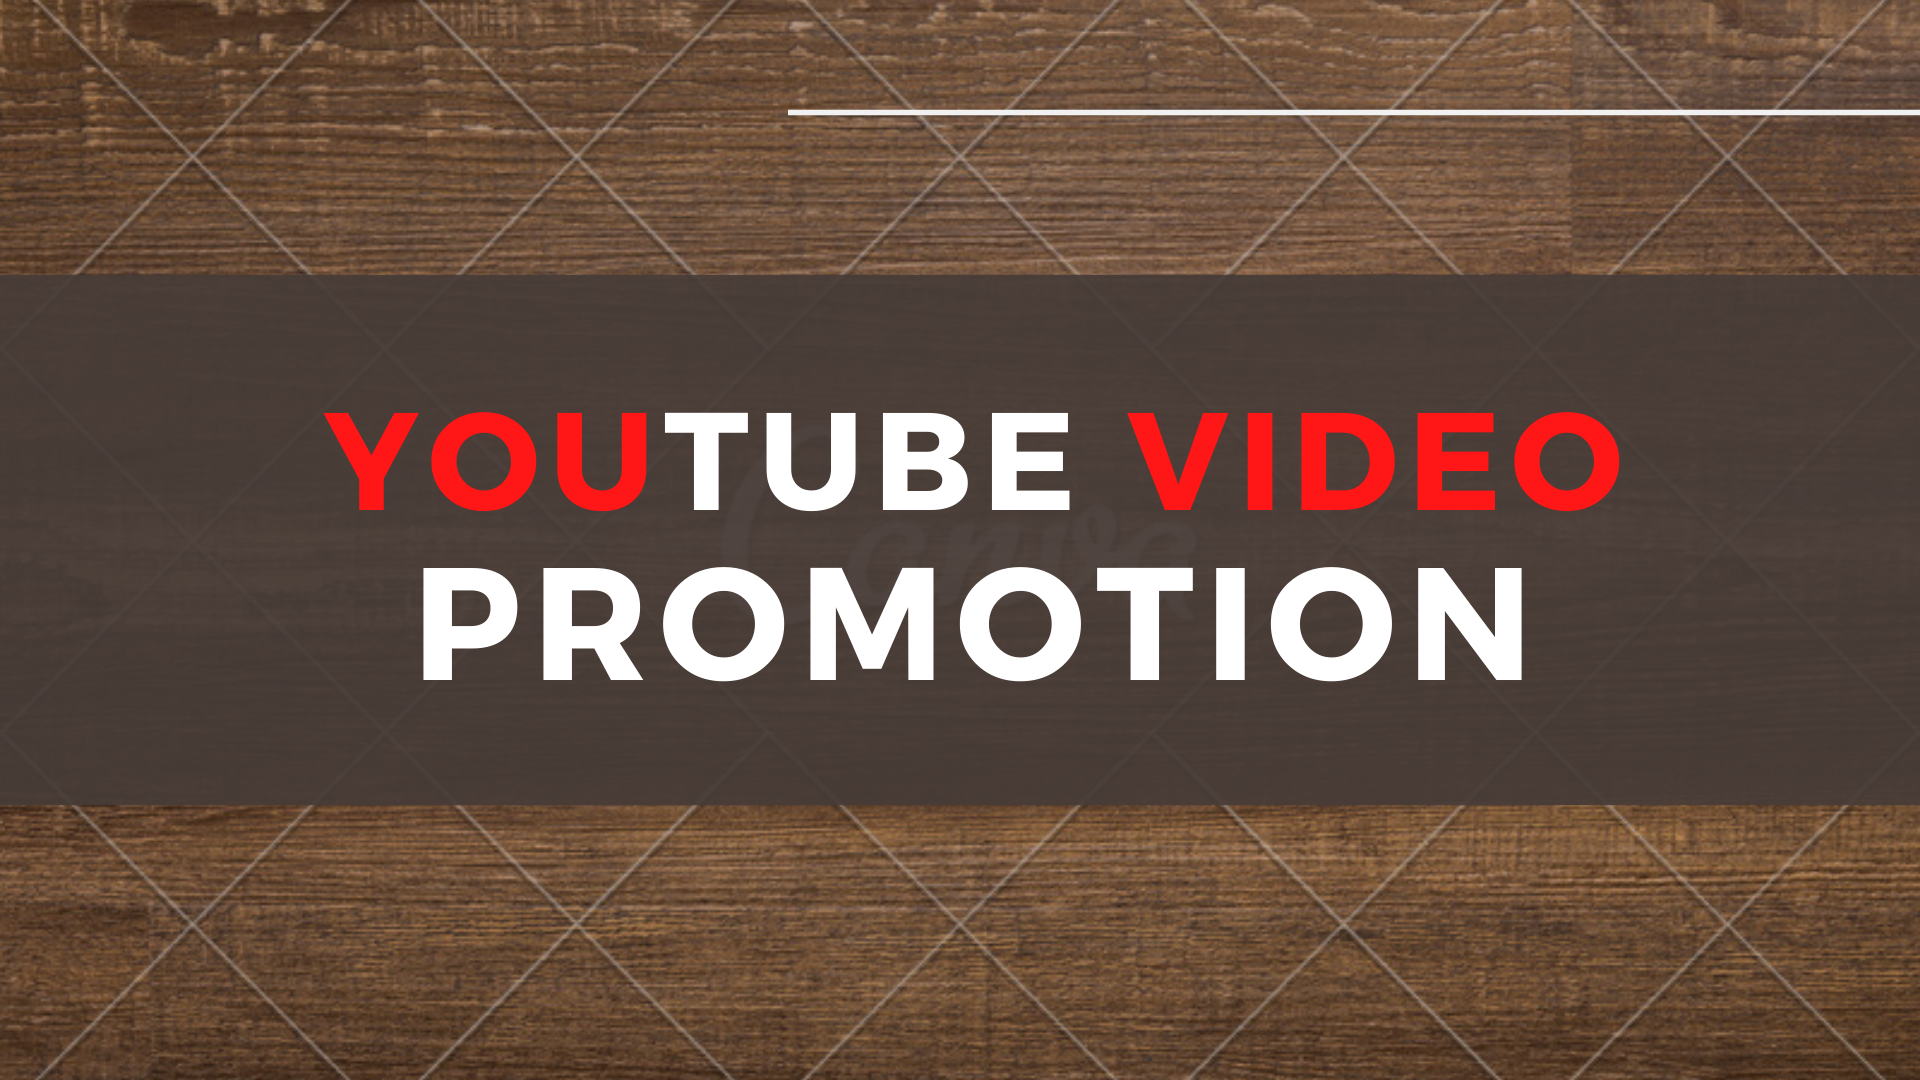 I will do youtube video promotion and seo backlinks for video ranking